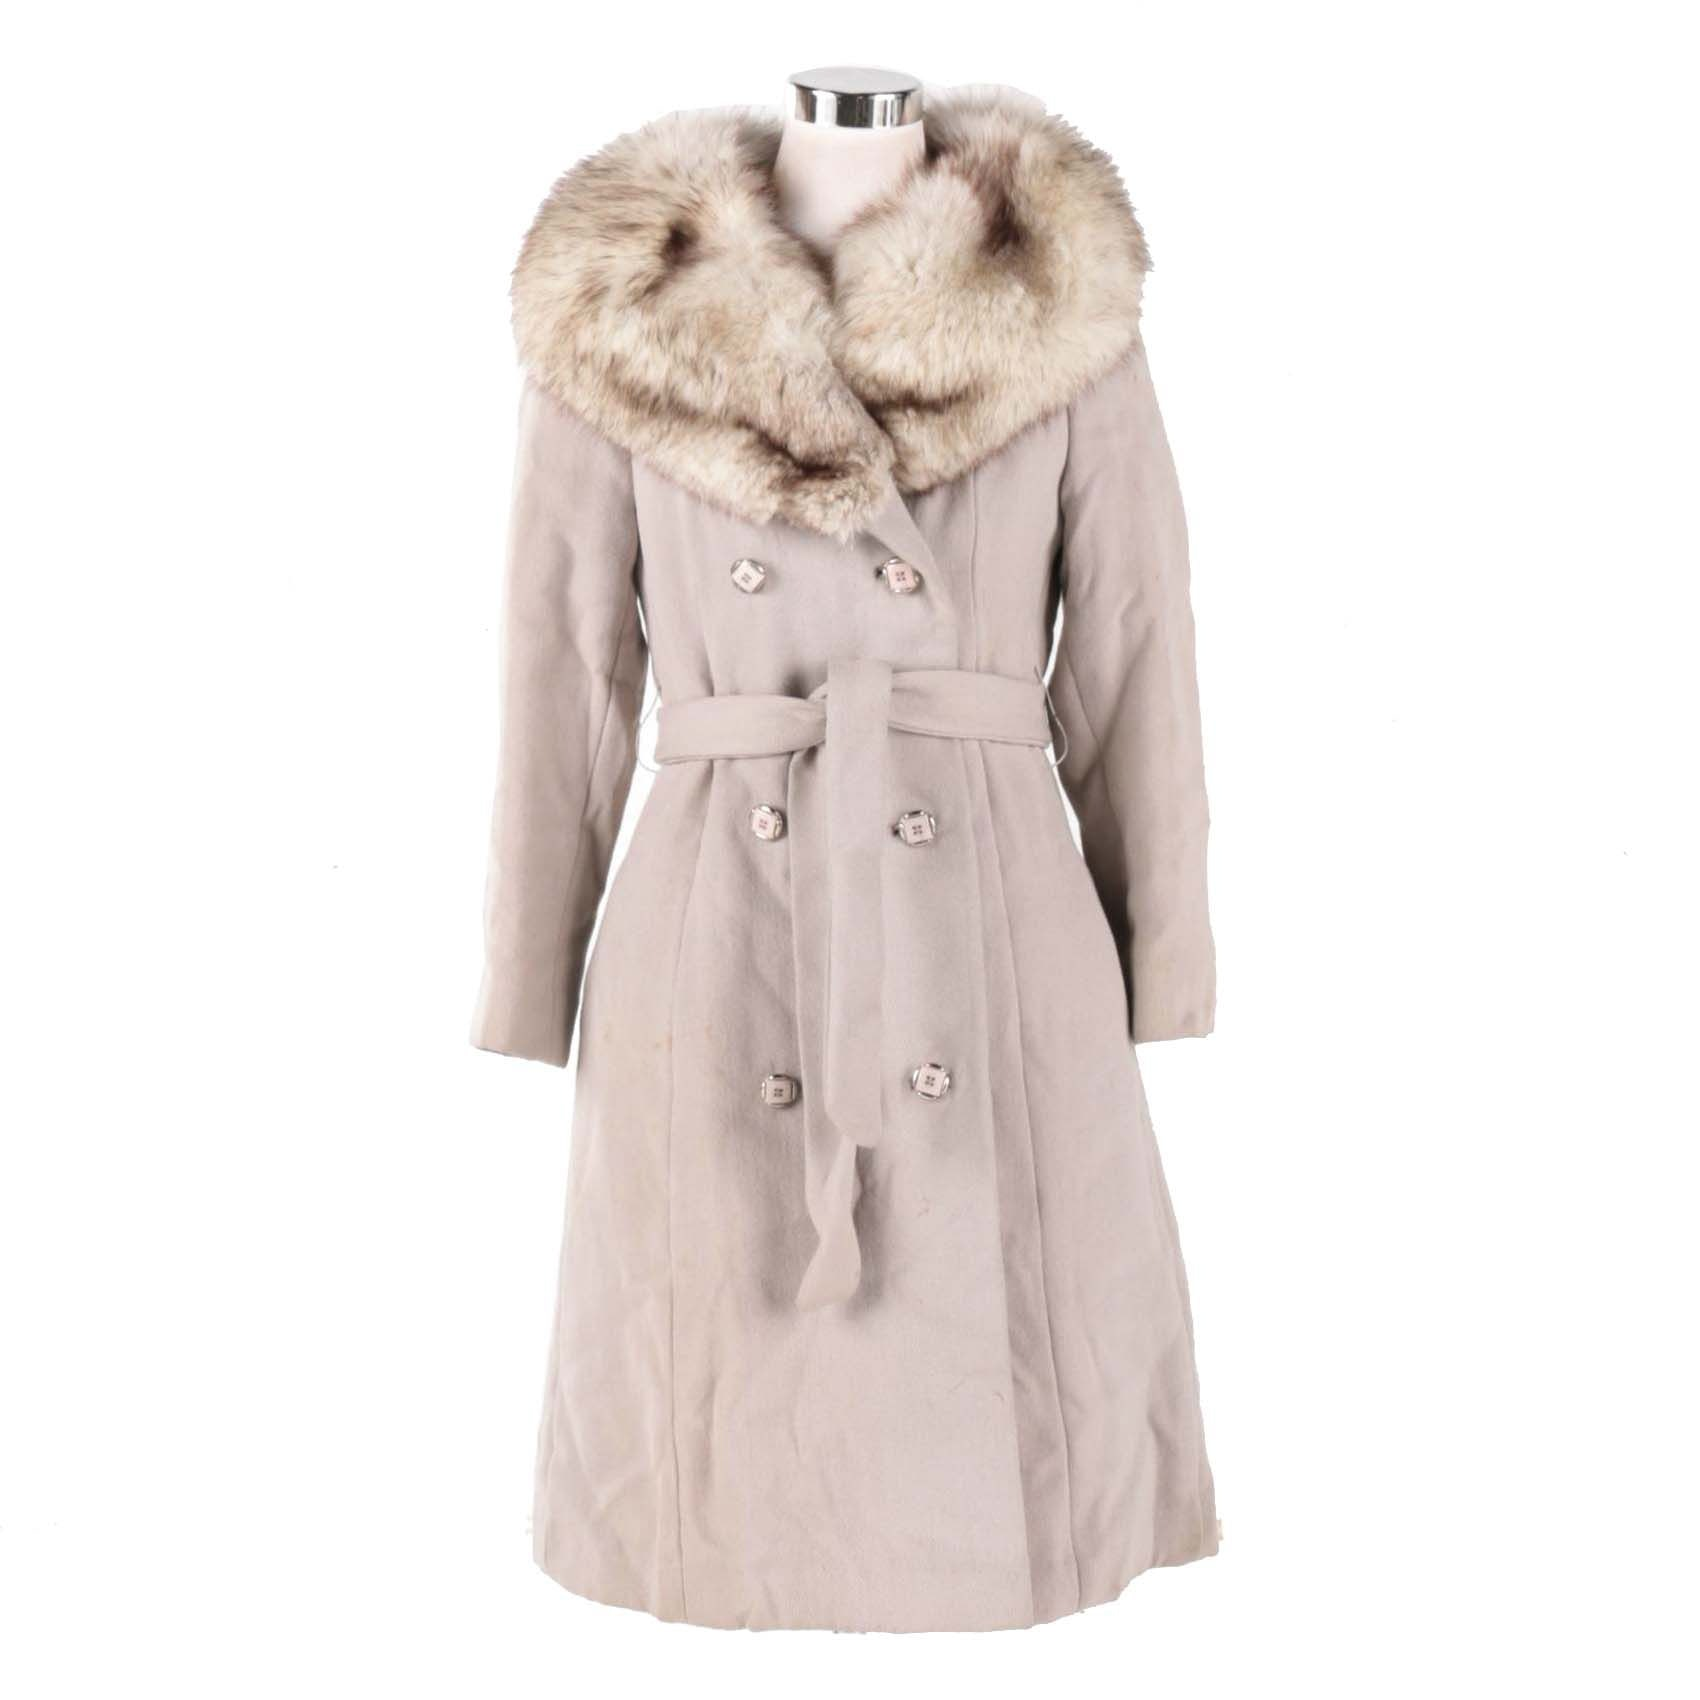 Vintage Double Breasted Coat with Fox Fur Collar